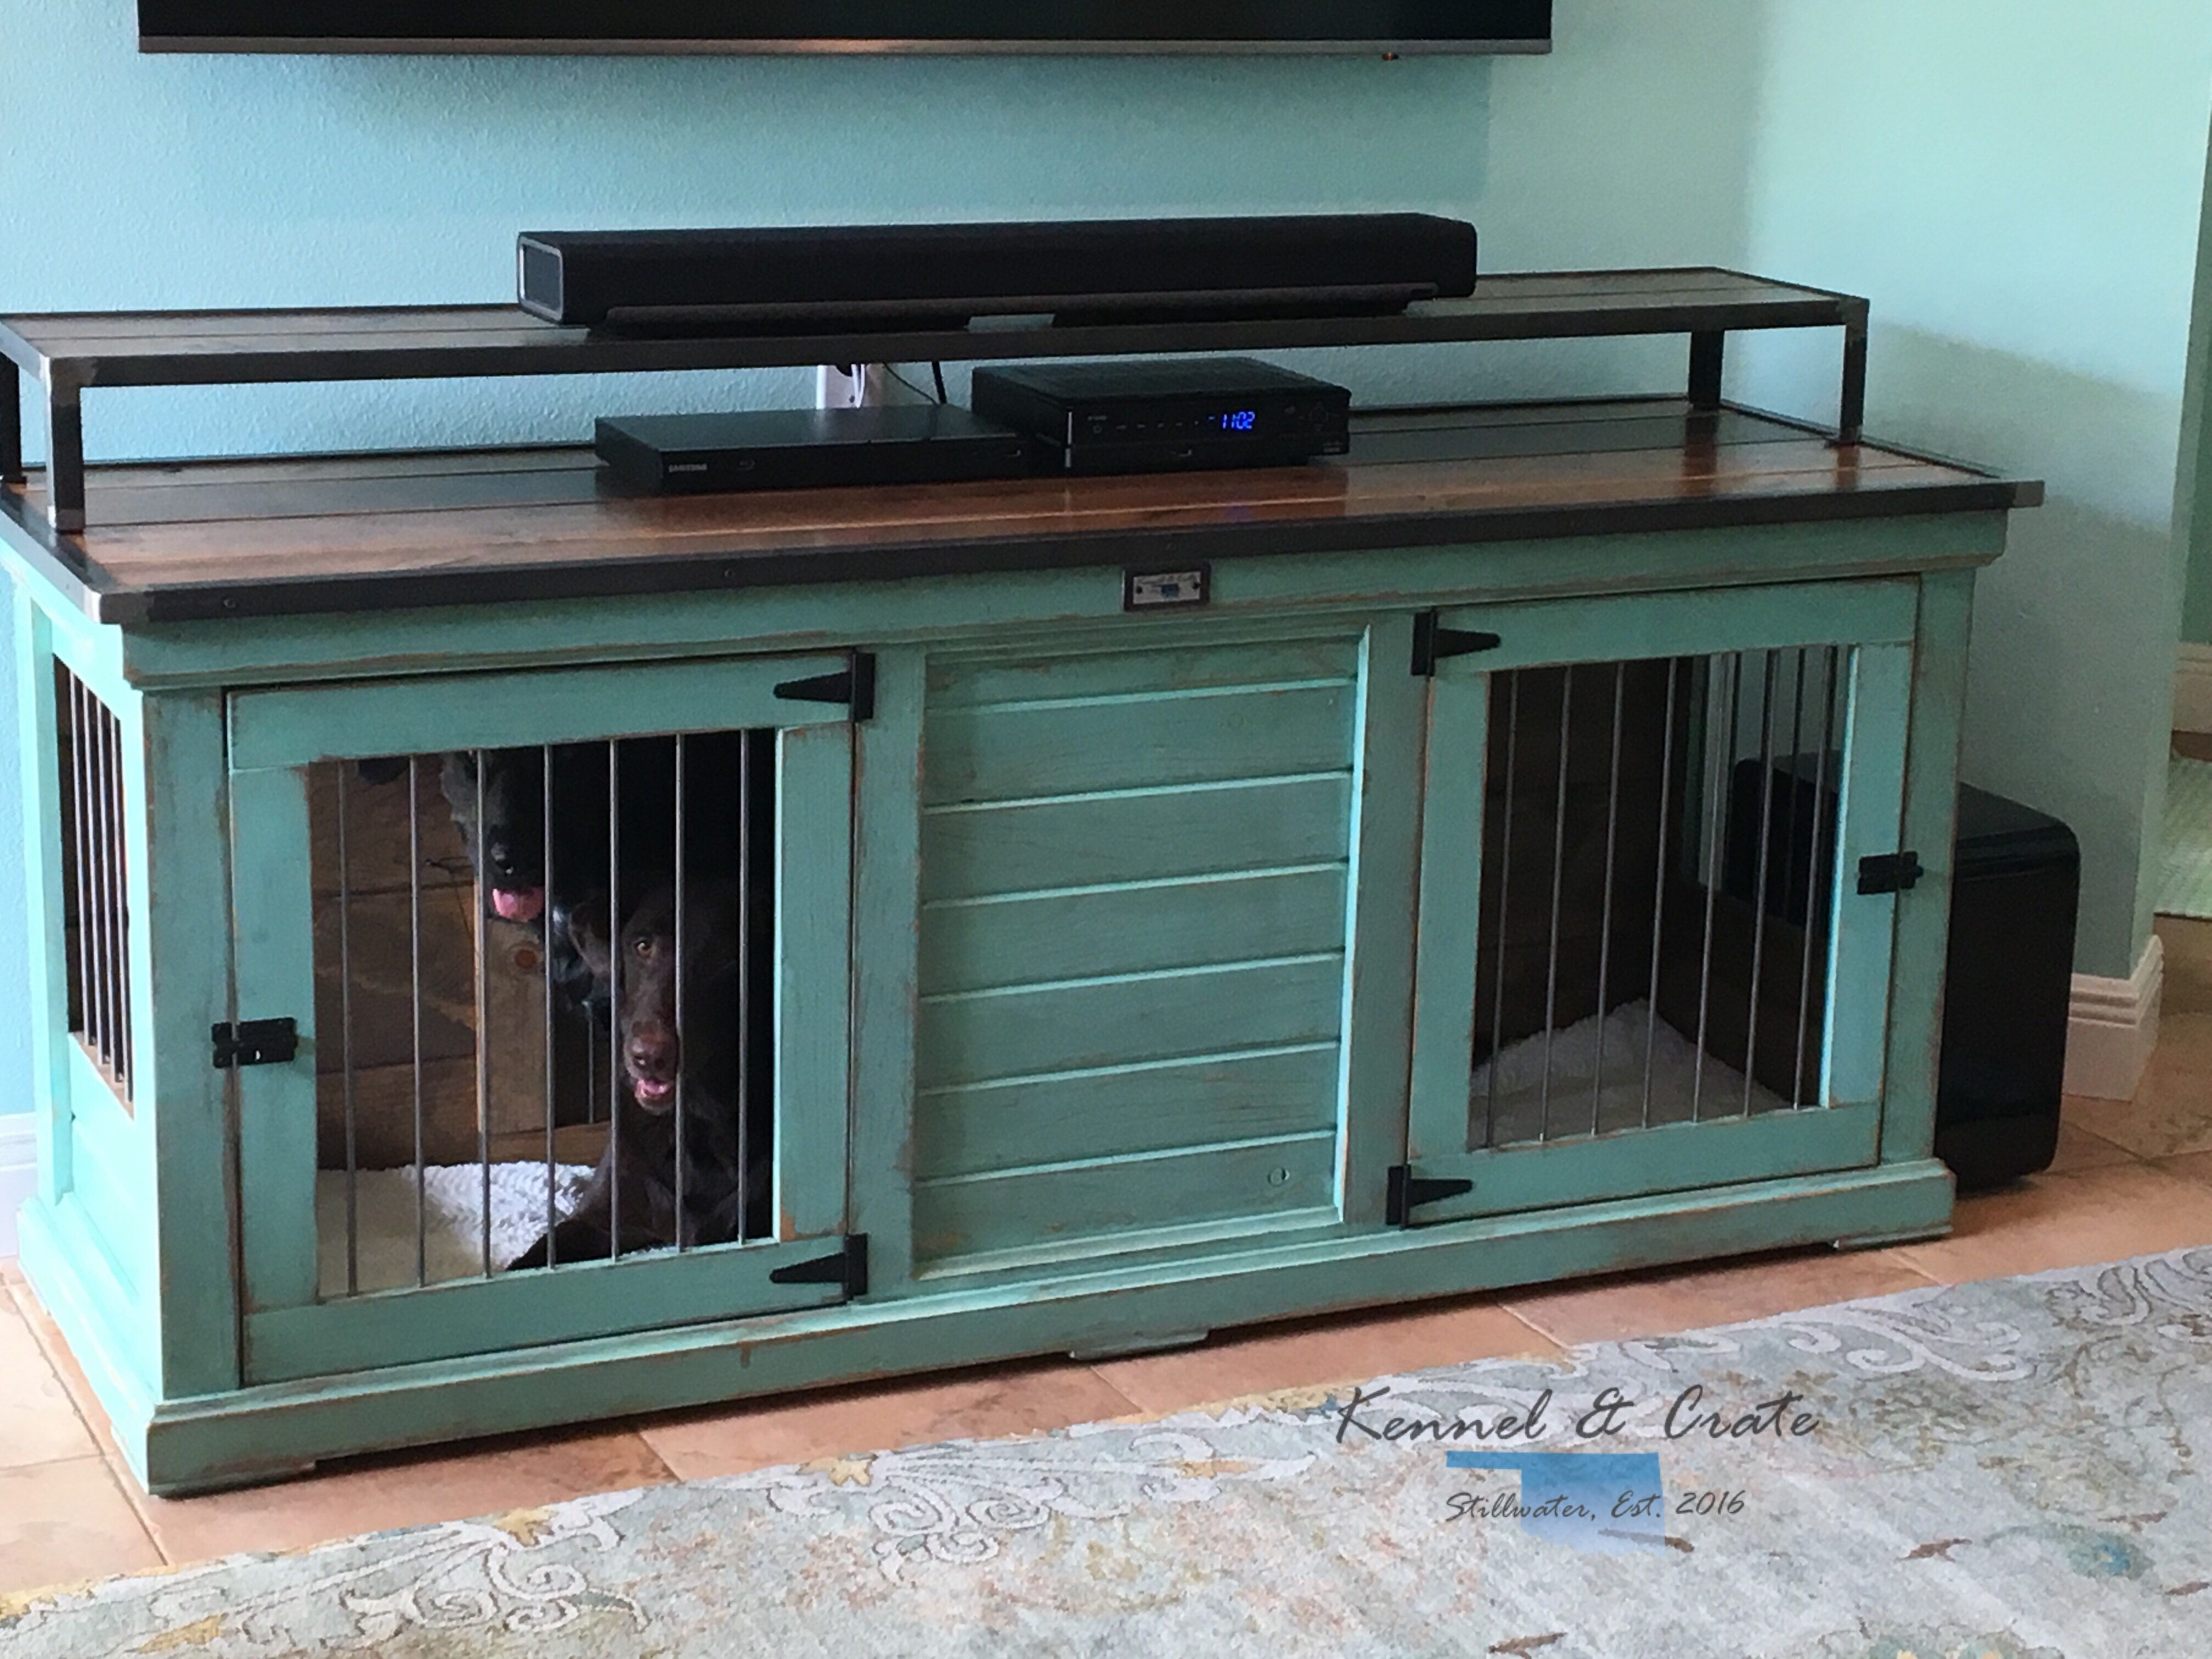 designer indoor dog kennels replace your wire dog crate with a beautiful piece of functional furniture great piece that can be used as an